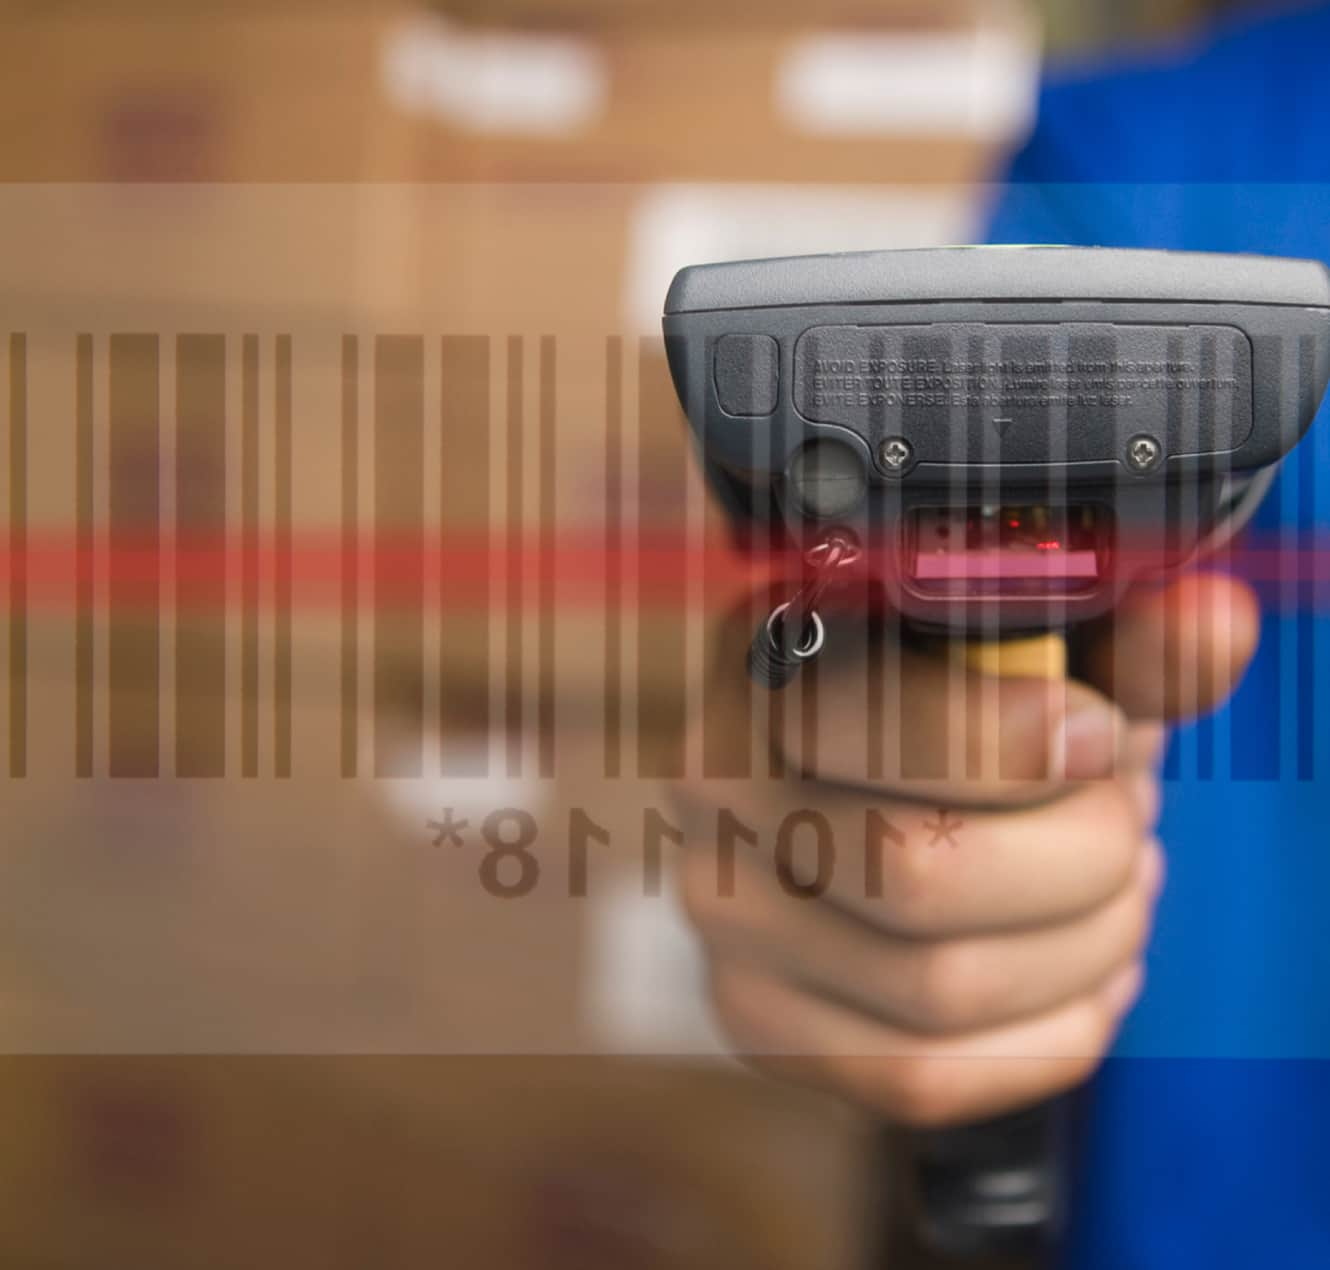 2d Barcodes To Uniquely Tag And Track All Stock Units